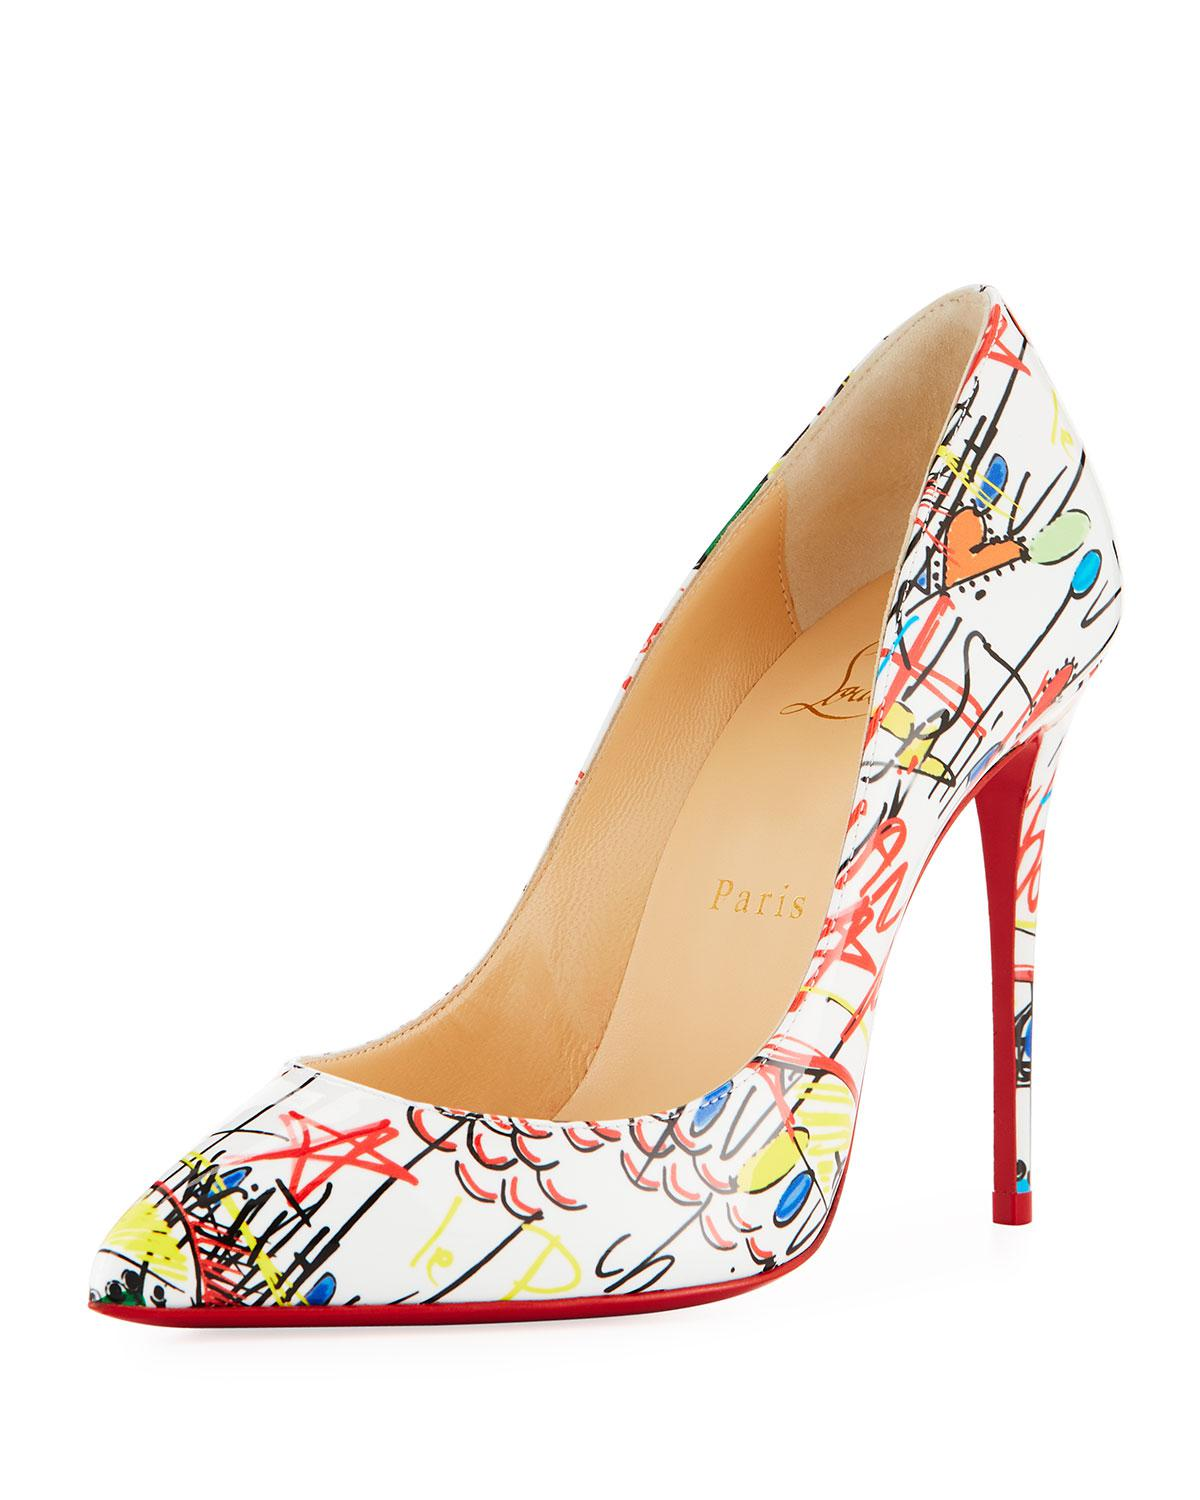 61f8f4b3c4b0 Gallery. Previously sold at  Bergdorf Goodman · Women s Christian Louboutin  Pigalle ...